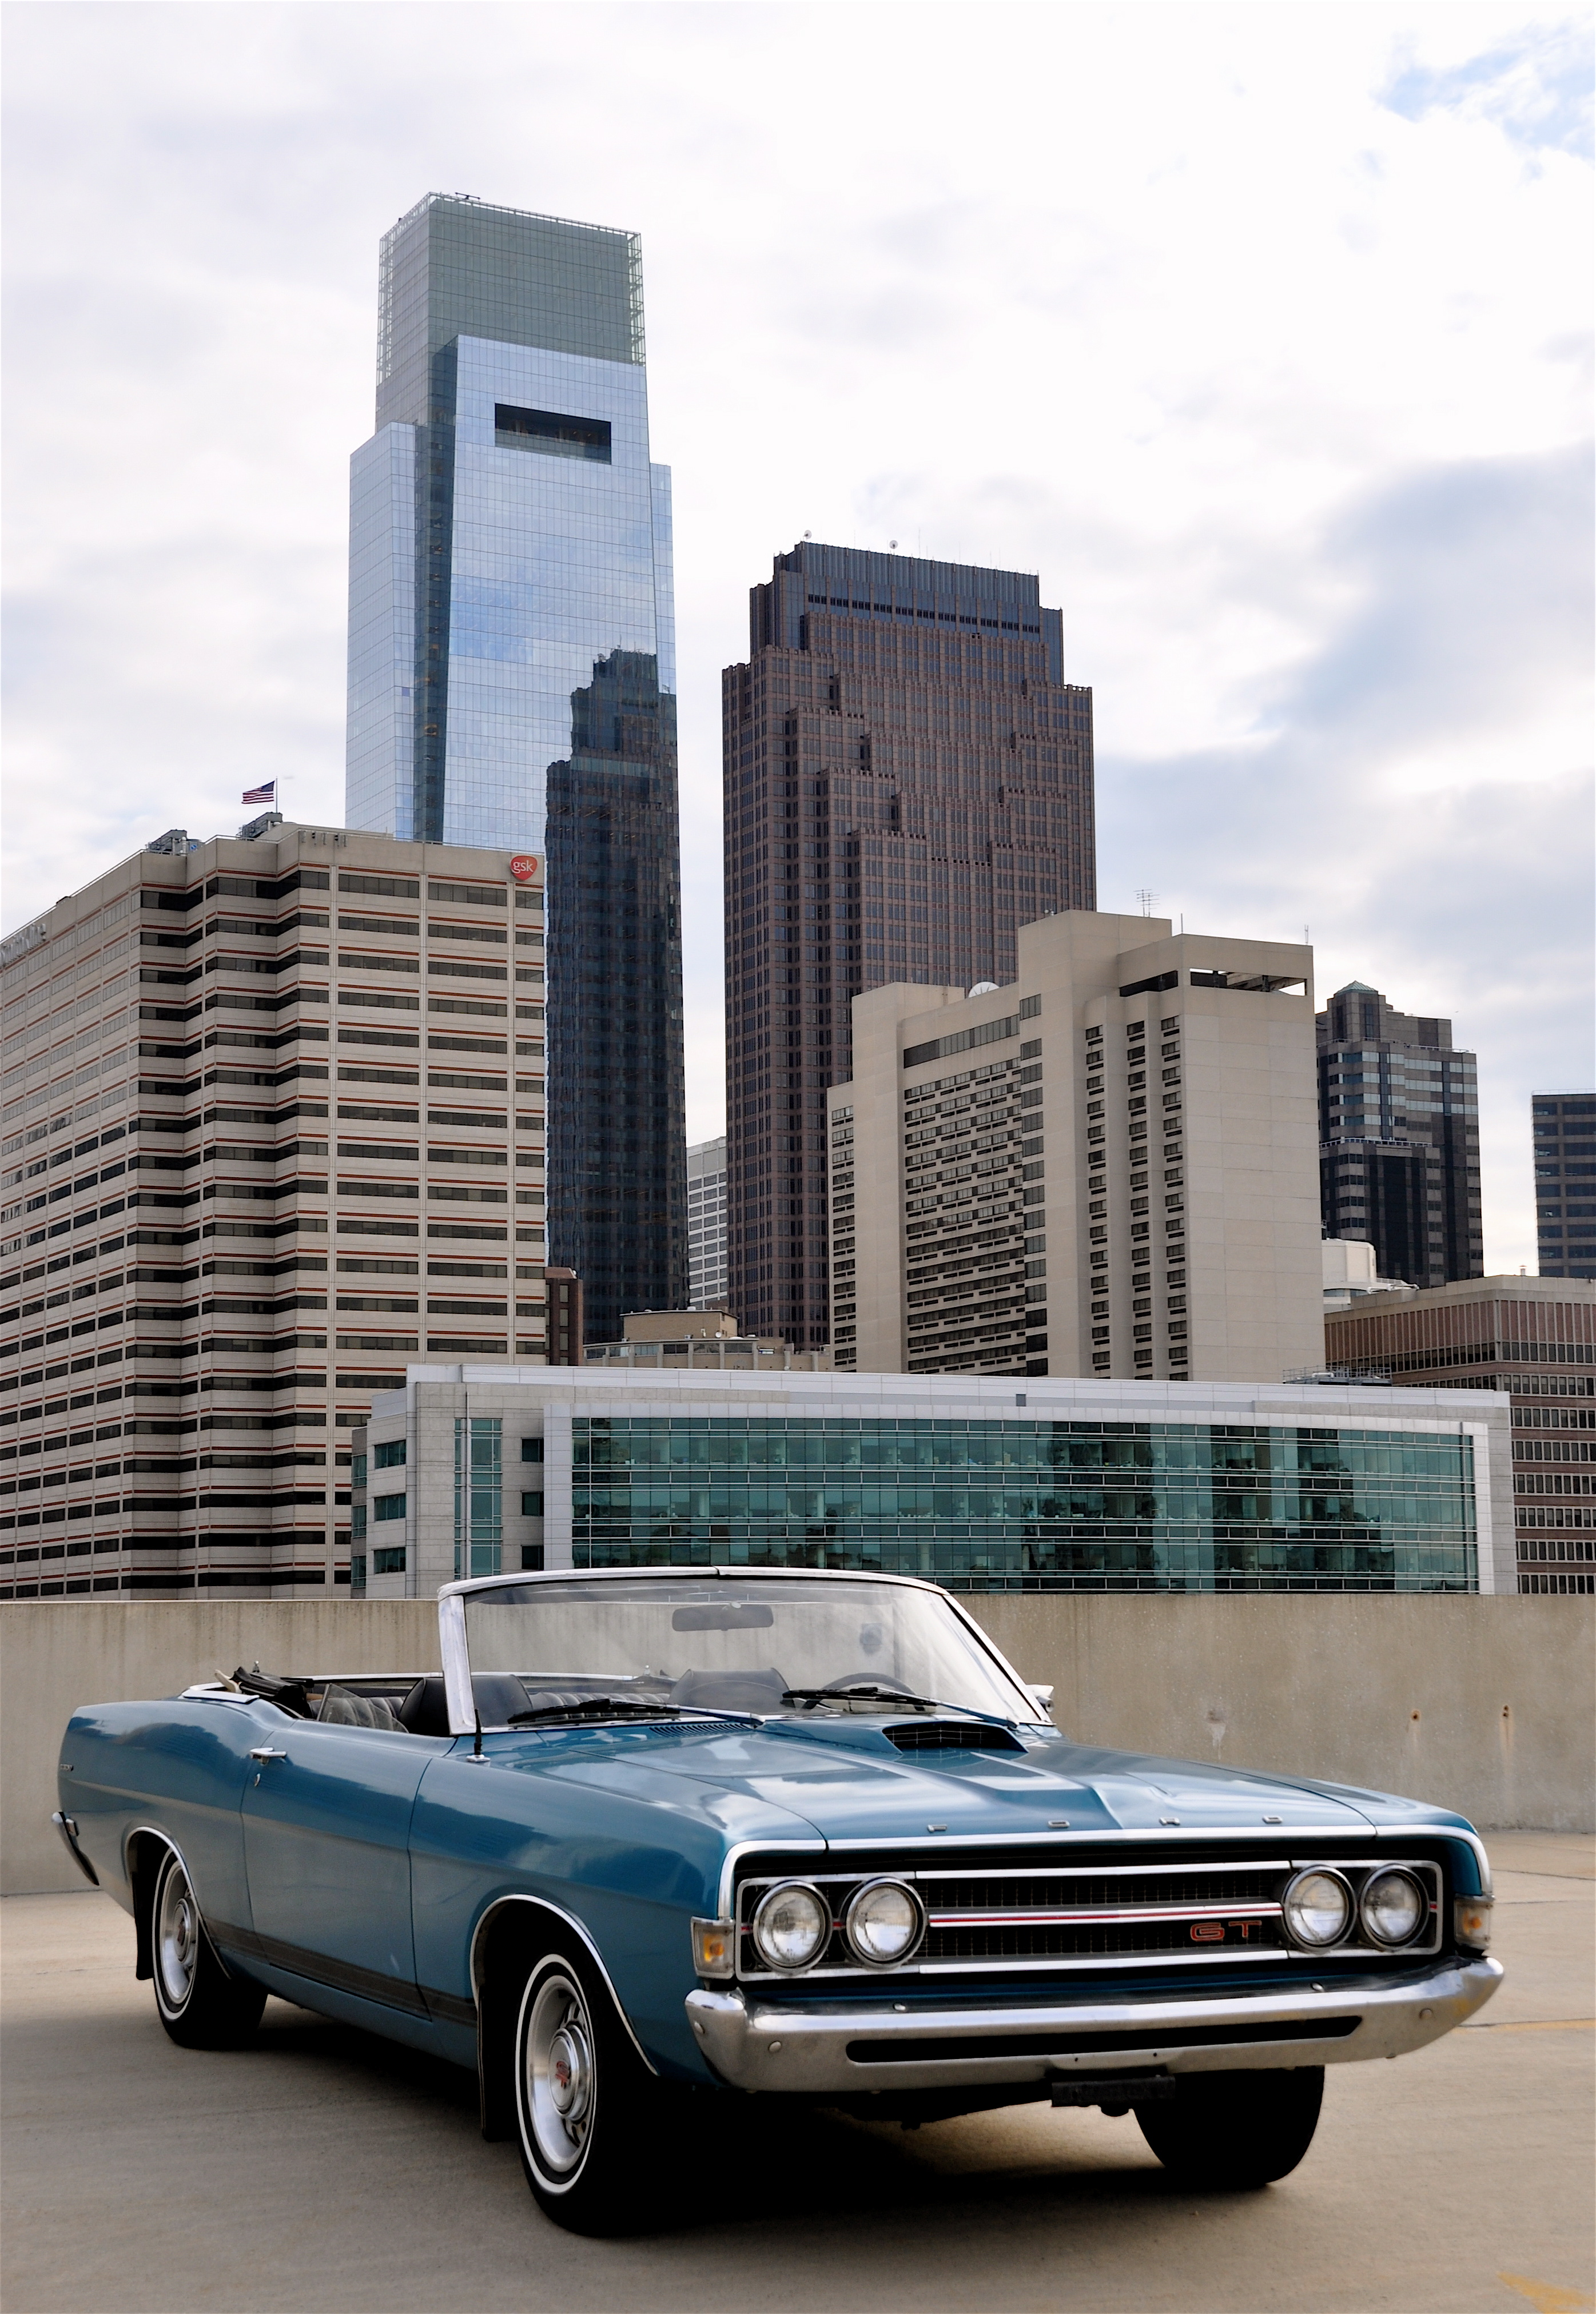 80946 download wallpaper Ford, Cars, Car, Vintage, Retro screensavers and pictures for free